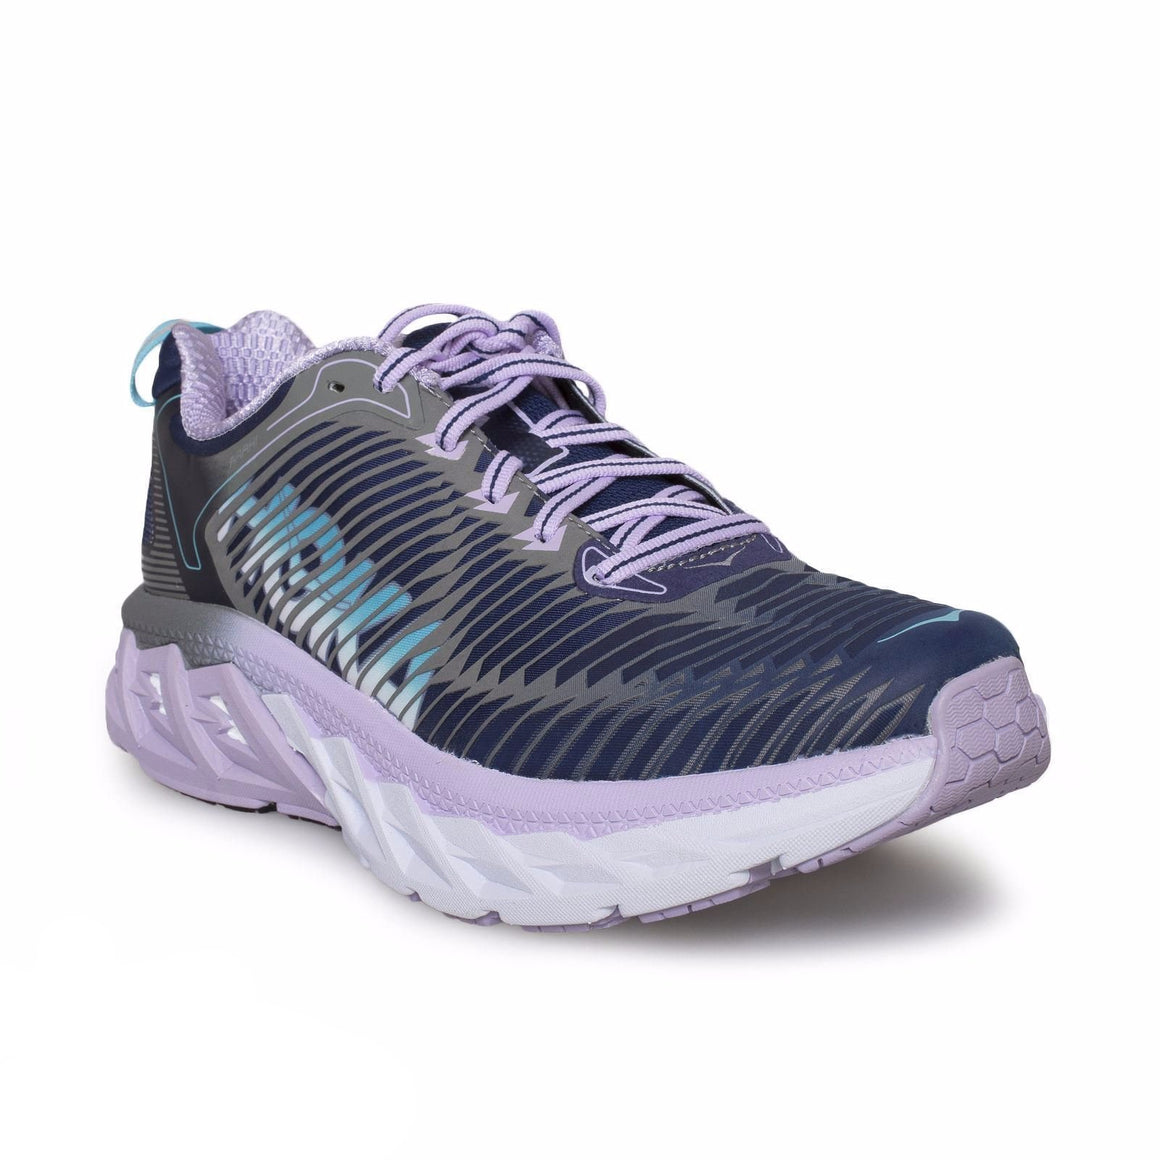 Hoka Arahi Medieval Blue/Lavender Running Shoes